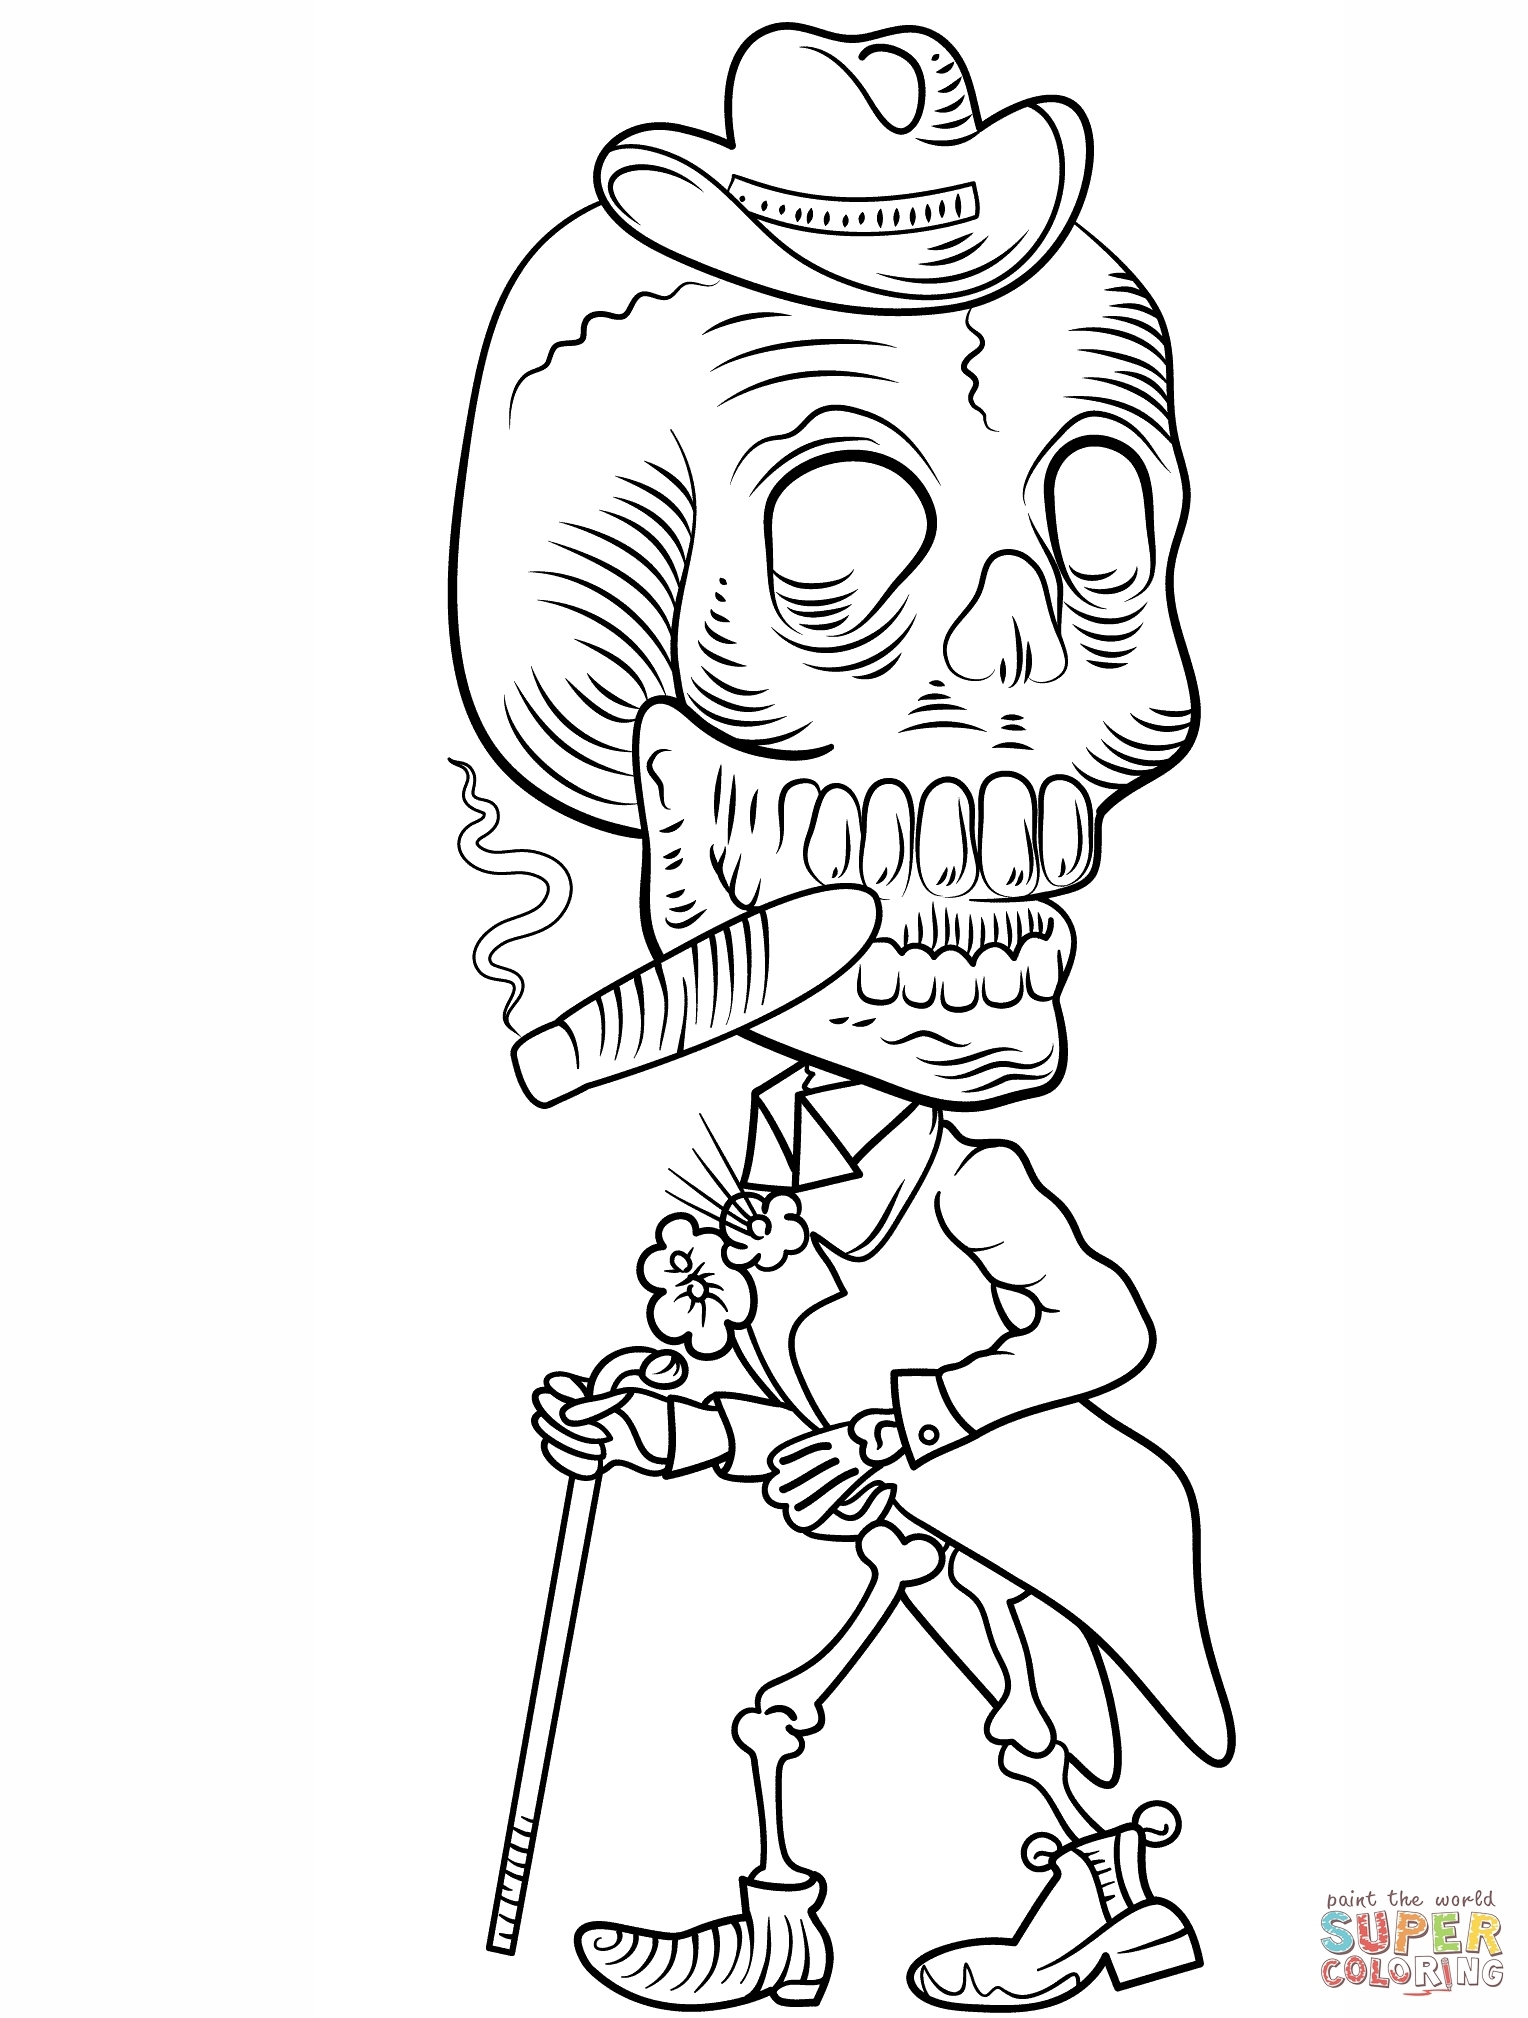 23 Skeleton Coloring Pages Compilation FREE COLORING PAGES Part 3